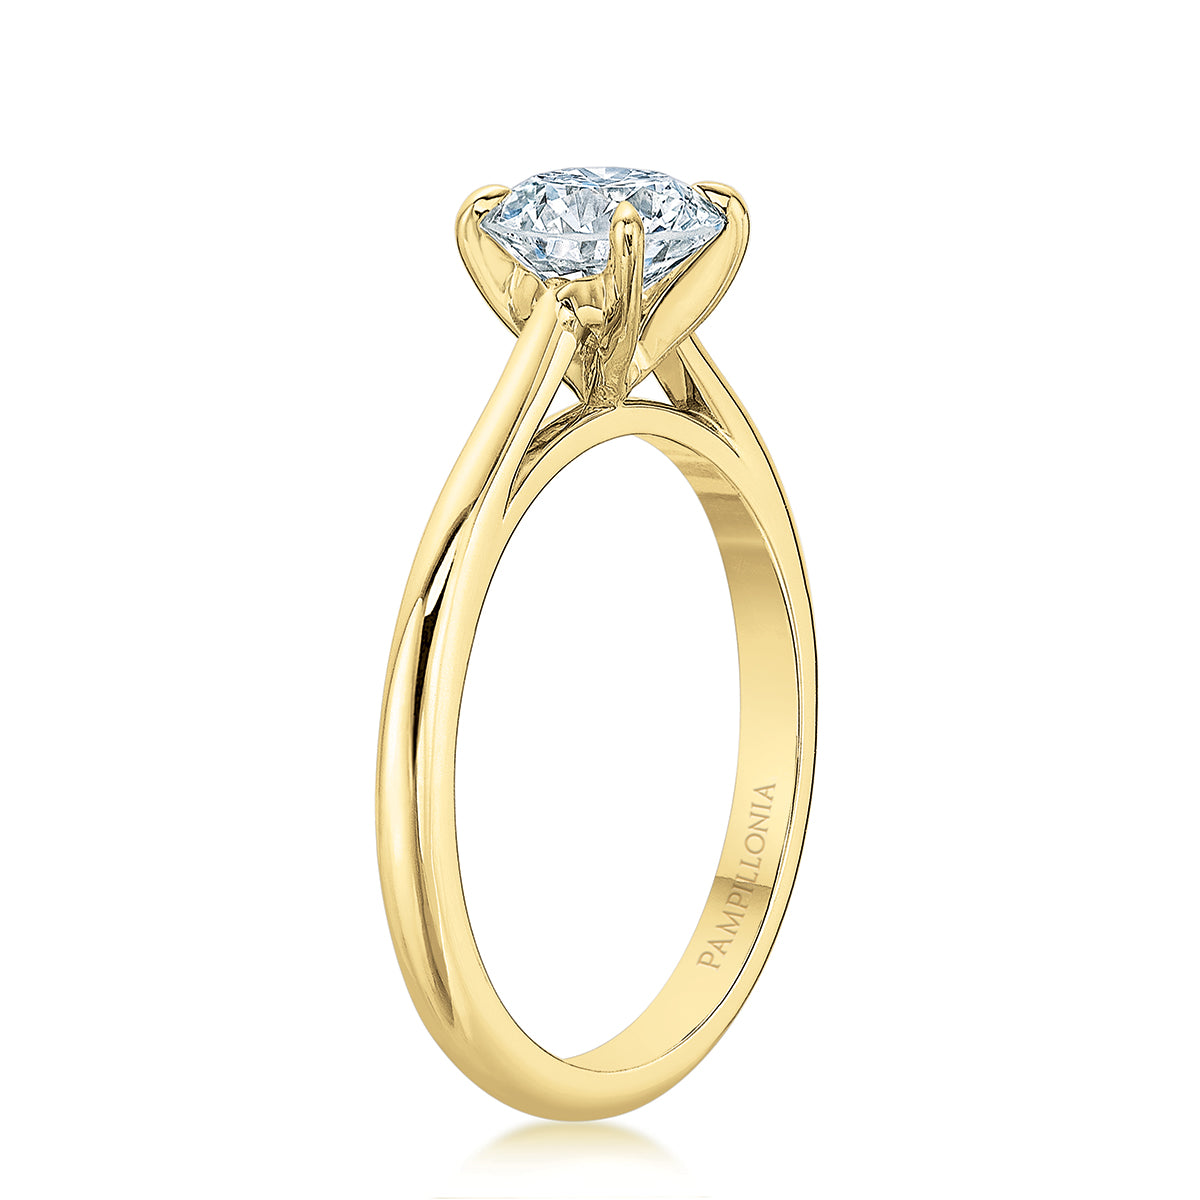 Lennon 18K Yellow Gold Solitaire